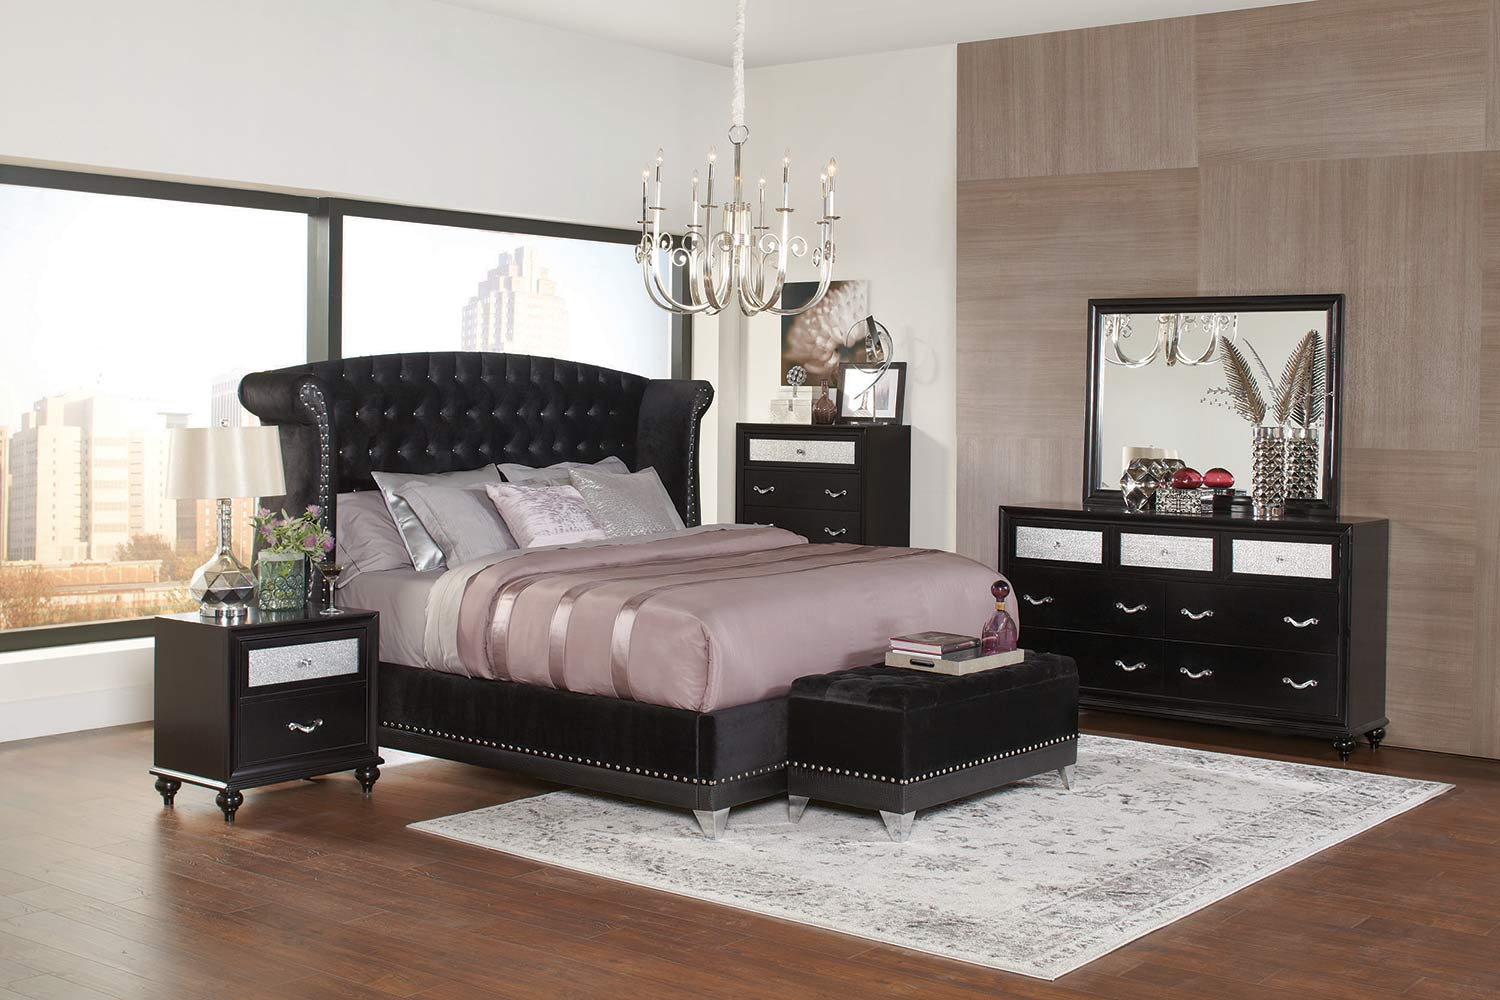 Coaster Barzini Bedroom Collection - Black Velvet